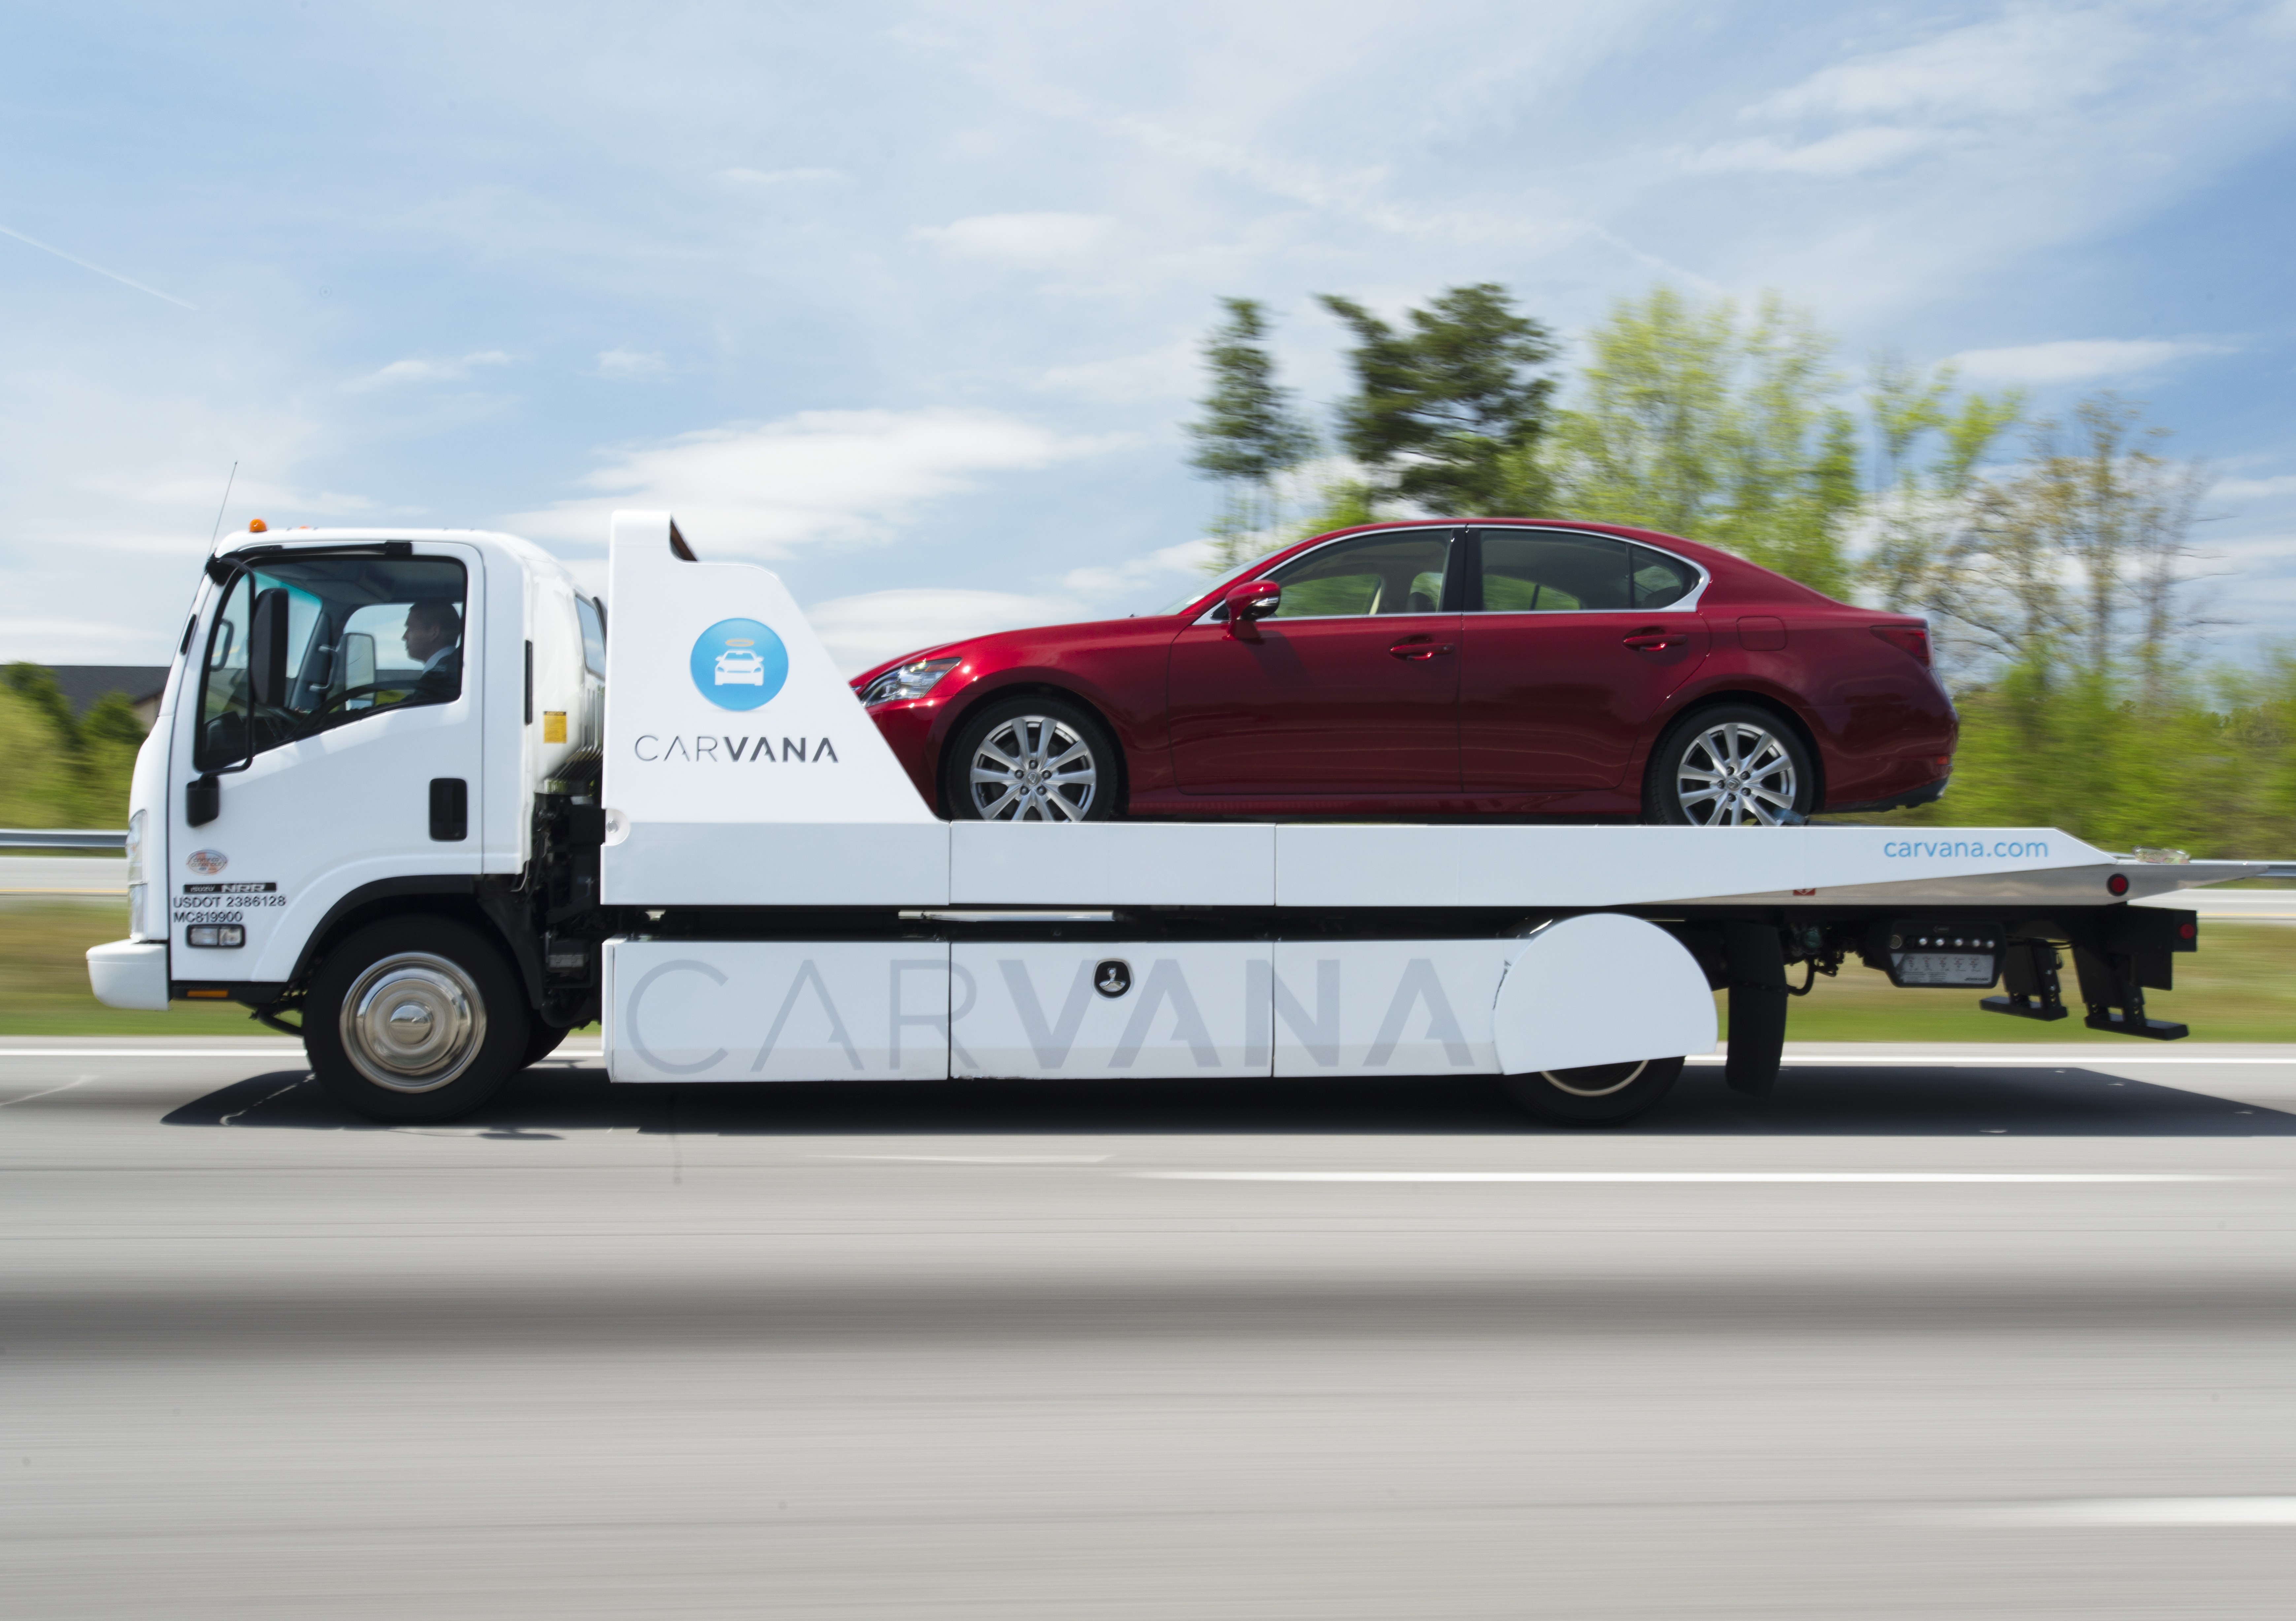 Carvana Expands Its Presence in the Volunteer State Launching